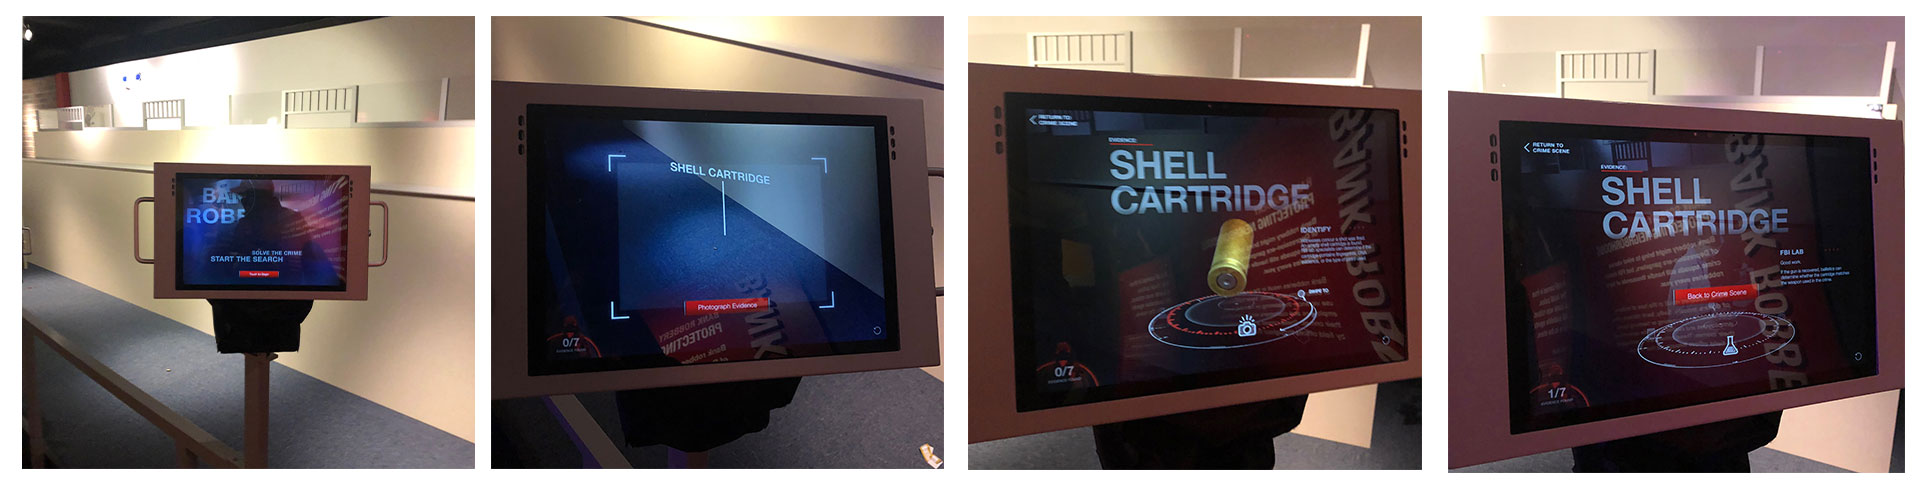 AR screens showing the progression of finding evidence in the bank robbery scene